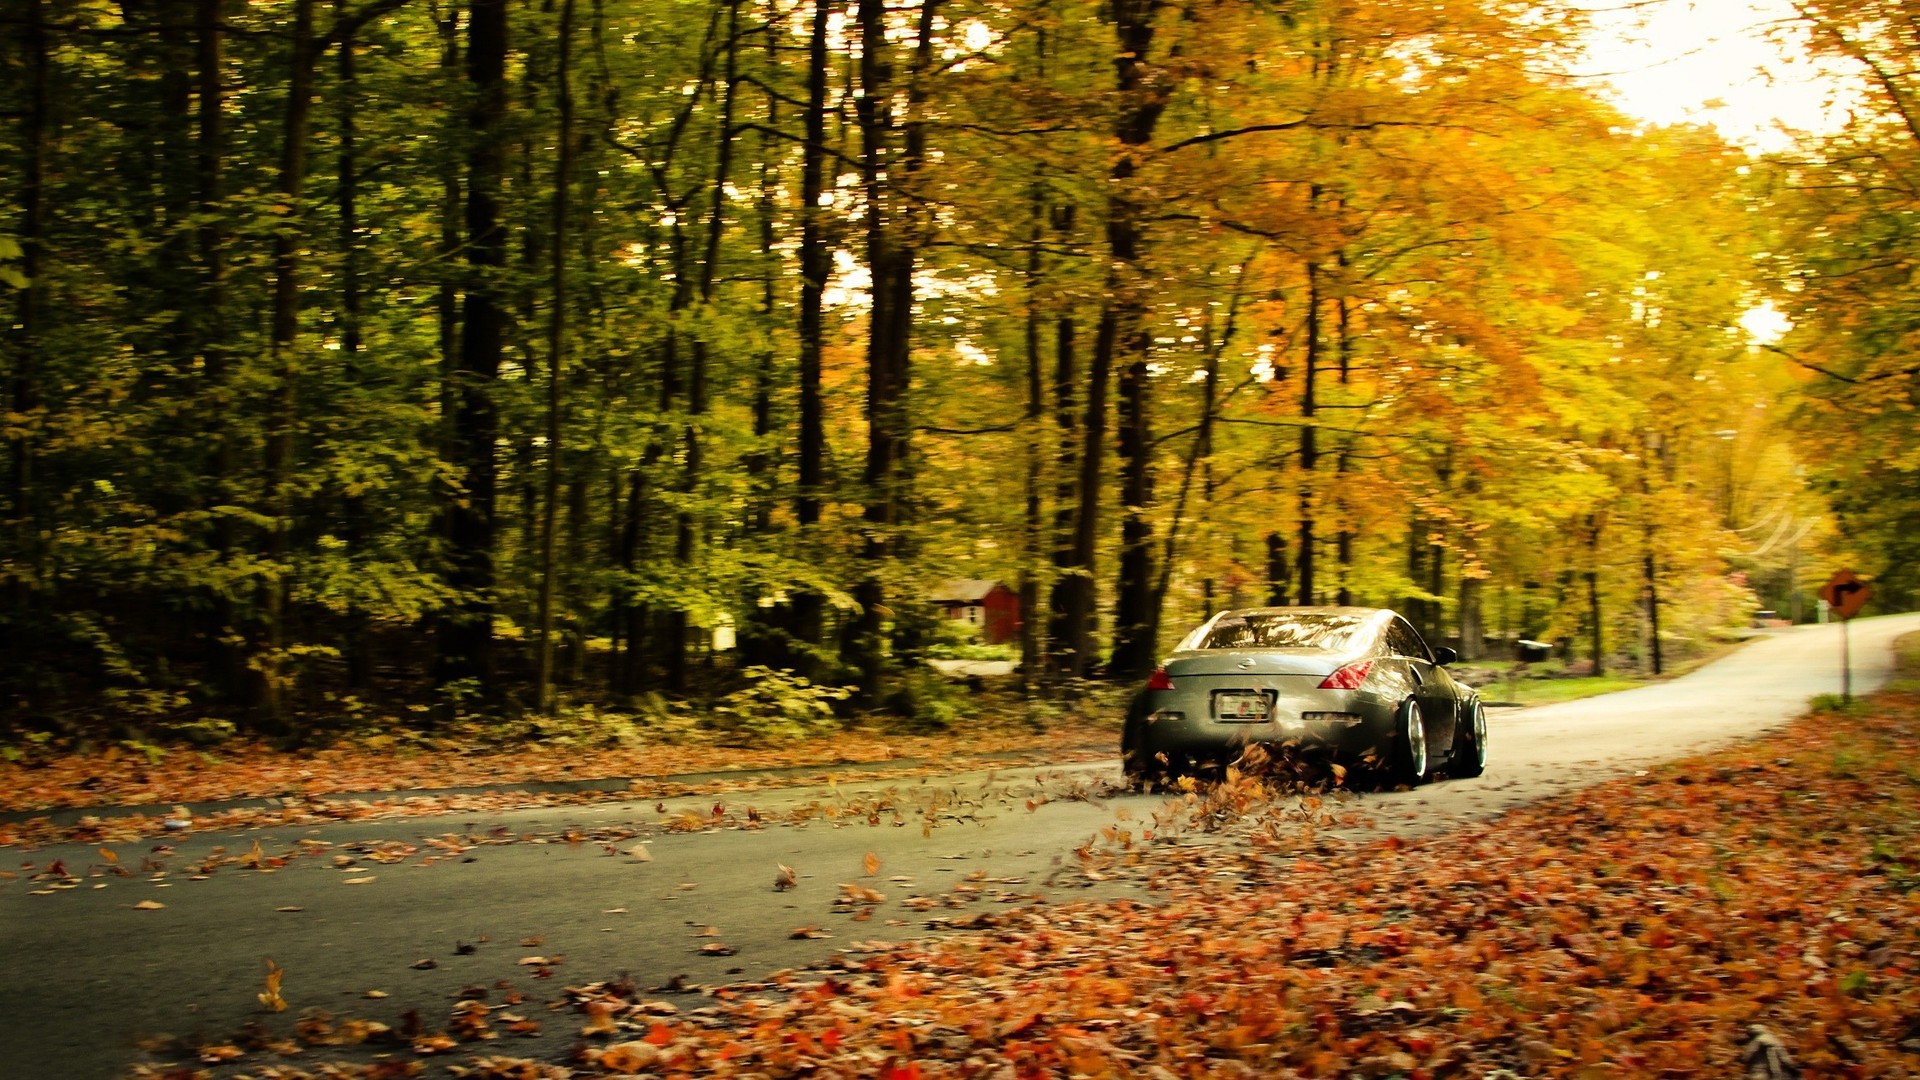 Best Fall Wallpapers Nissan 350z Fallen Leaves Wallpaper Allwallpaper In